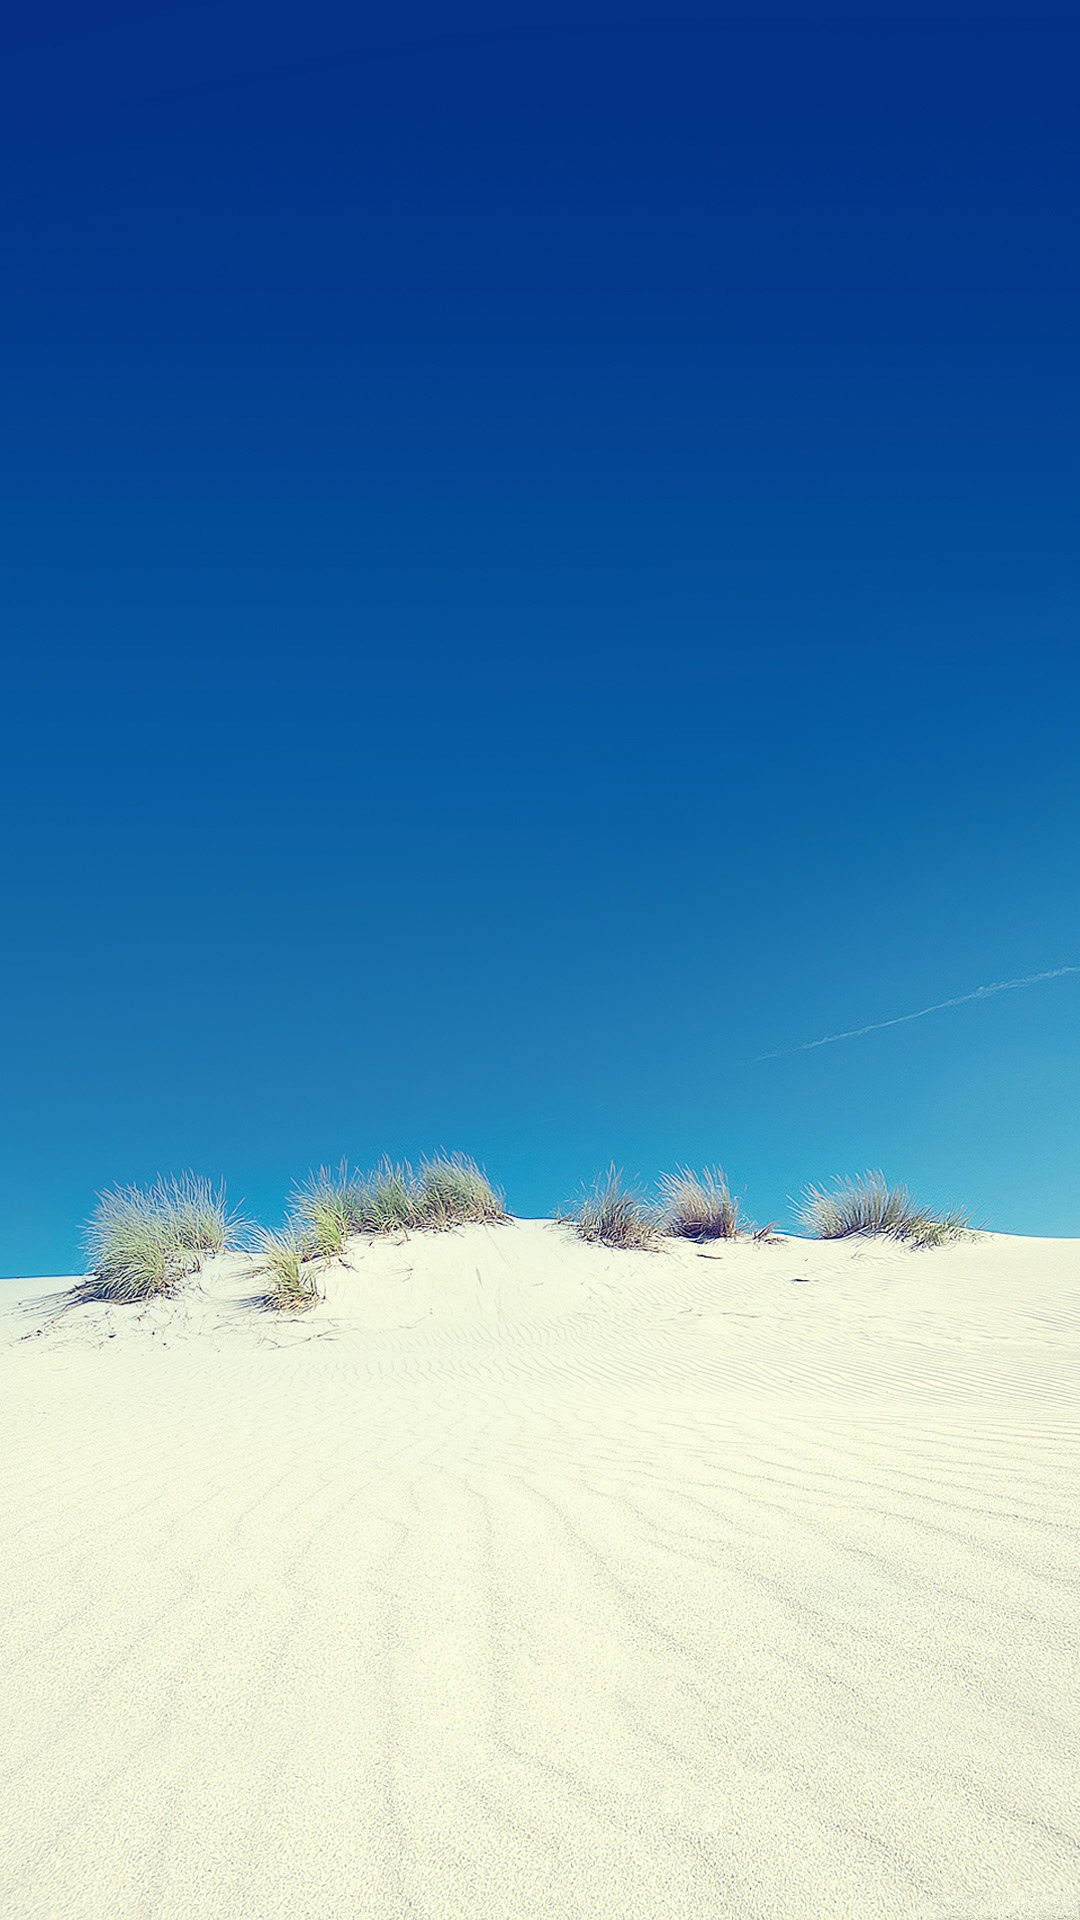 Desert-sand-dune-and-clear-sky-Android-wallpaper-wp5404497